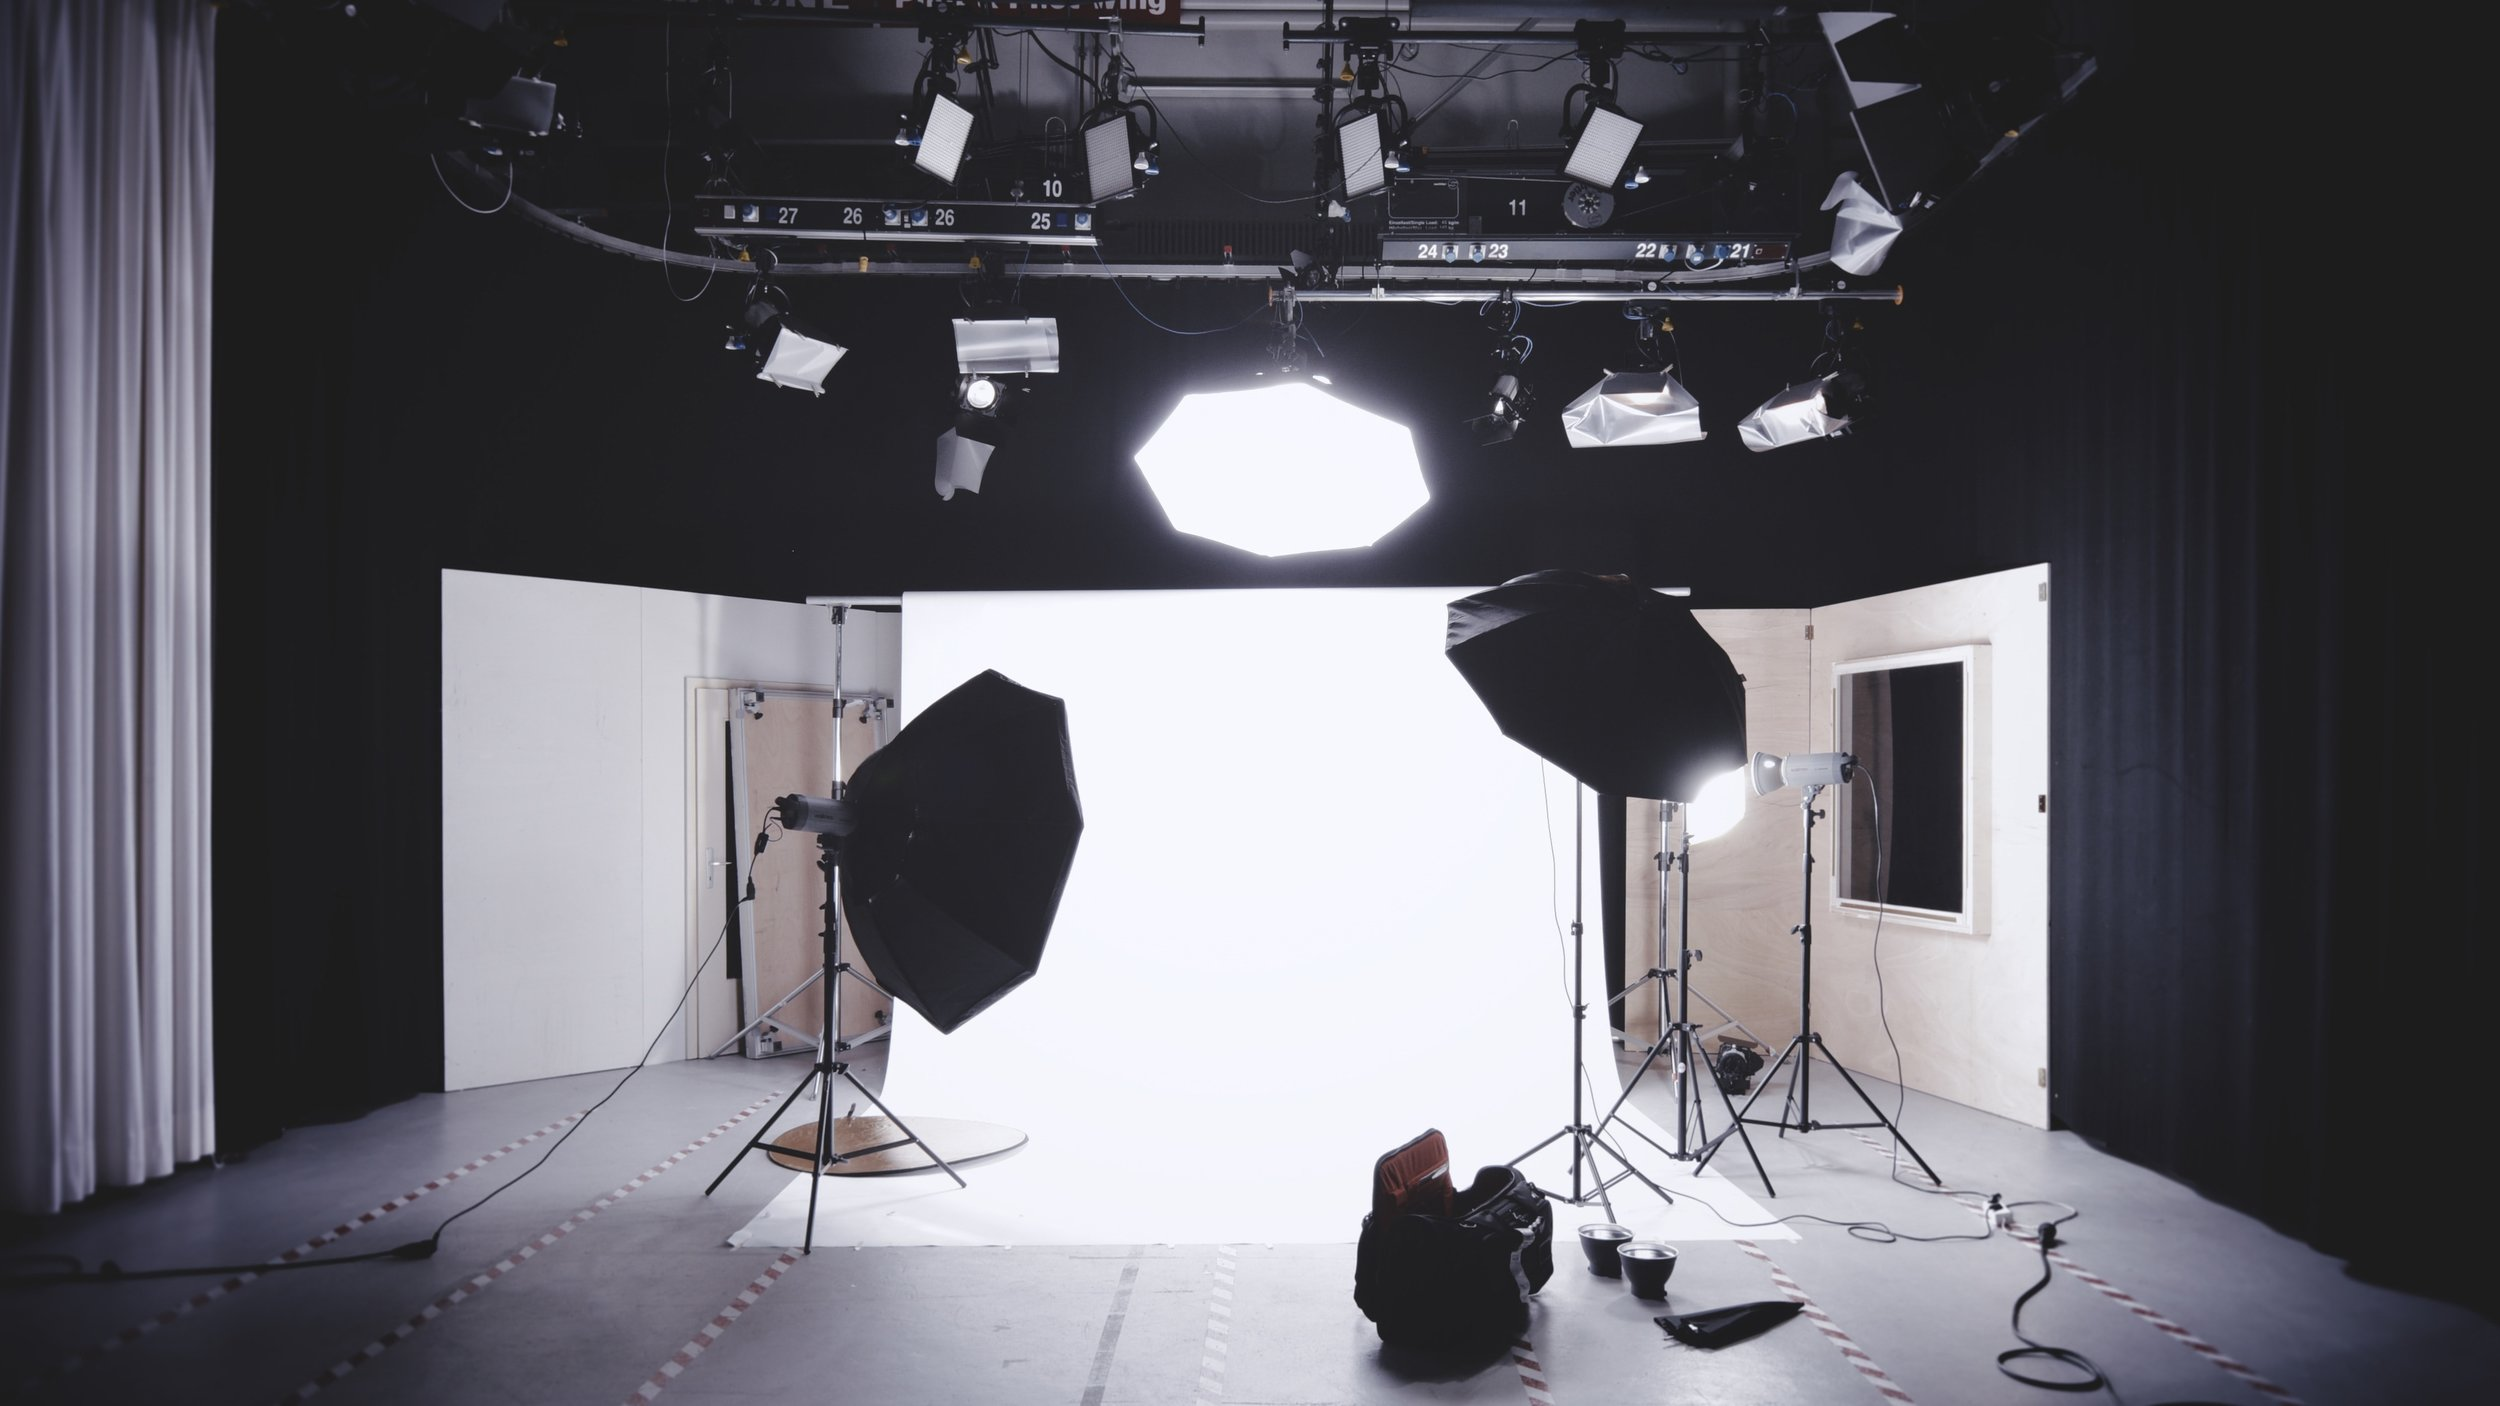 New Studio Coming Soon - We will be opening up a new creative studio expecting to be opening by Q4 2019. More details will be added soon.Posted July 5th 2019Click here for more info